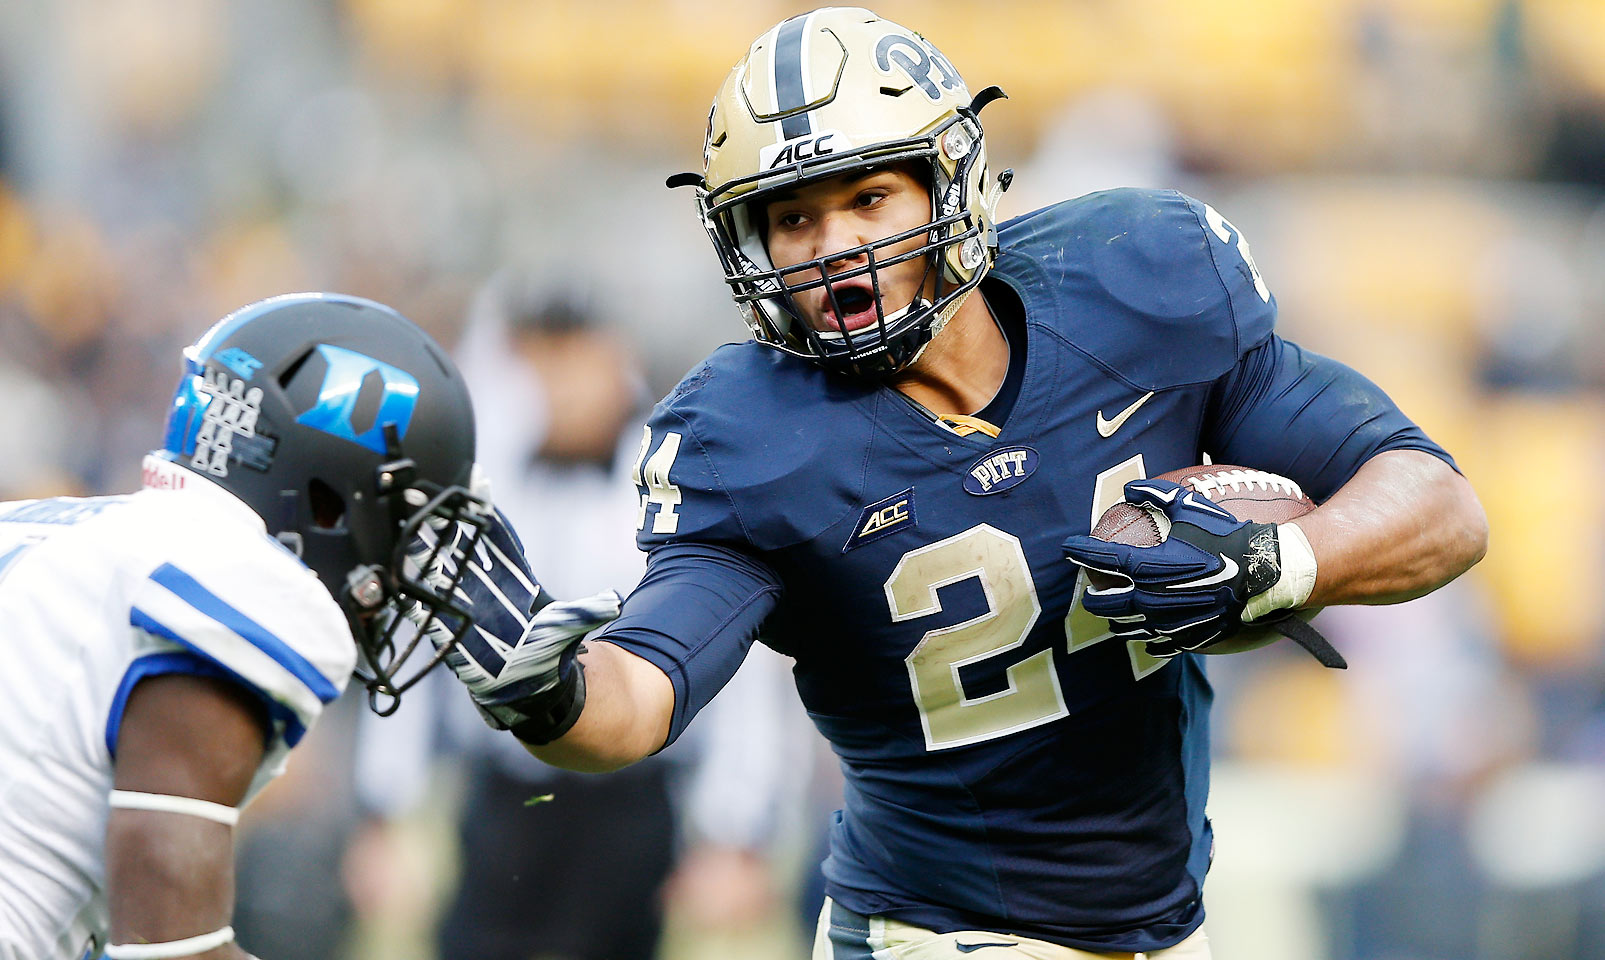 Conner established himself as a workhorse back for the Panthers in 2014, carrying the ball 298 times fore 1,765 yards with 26 touchdowns. He's in line for more opportunities to run the ball this upcoming season.